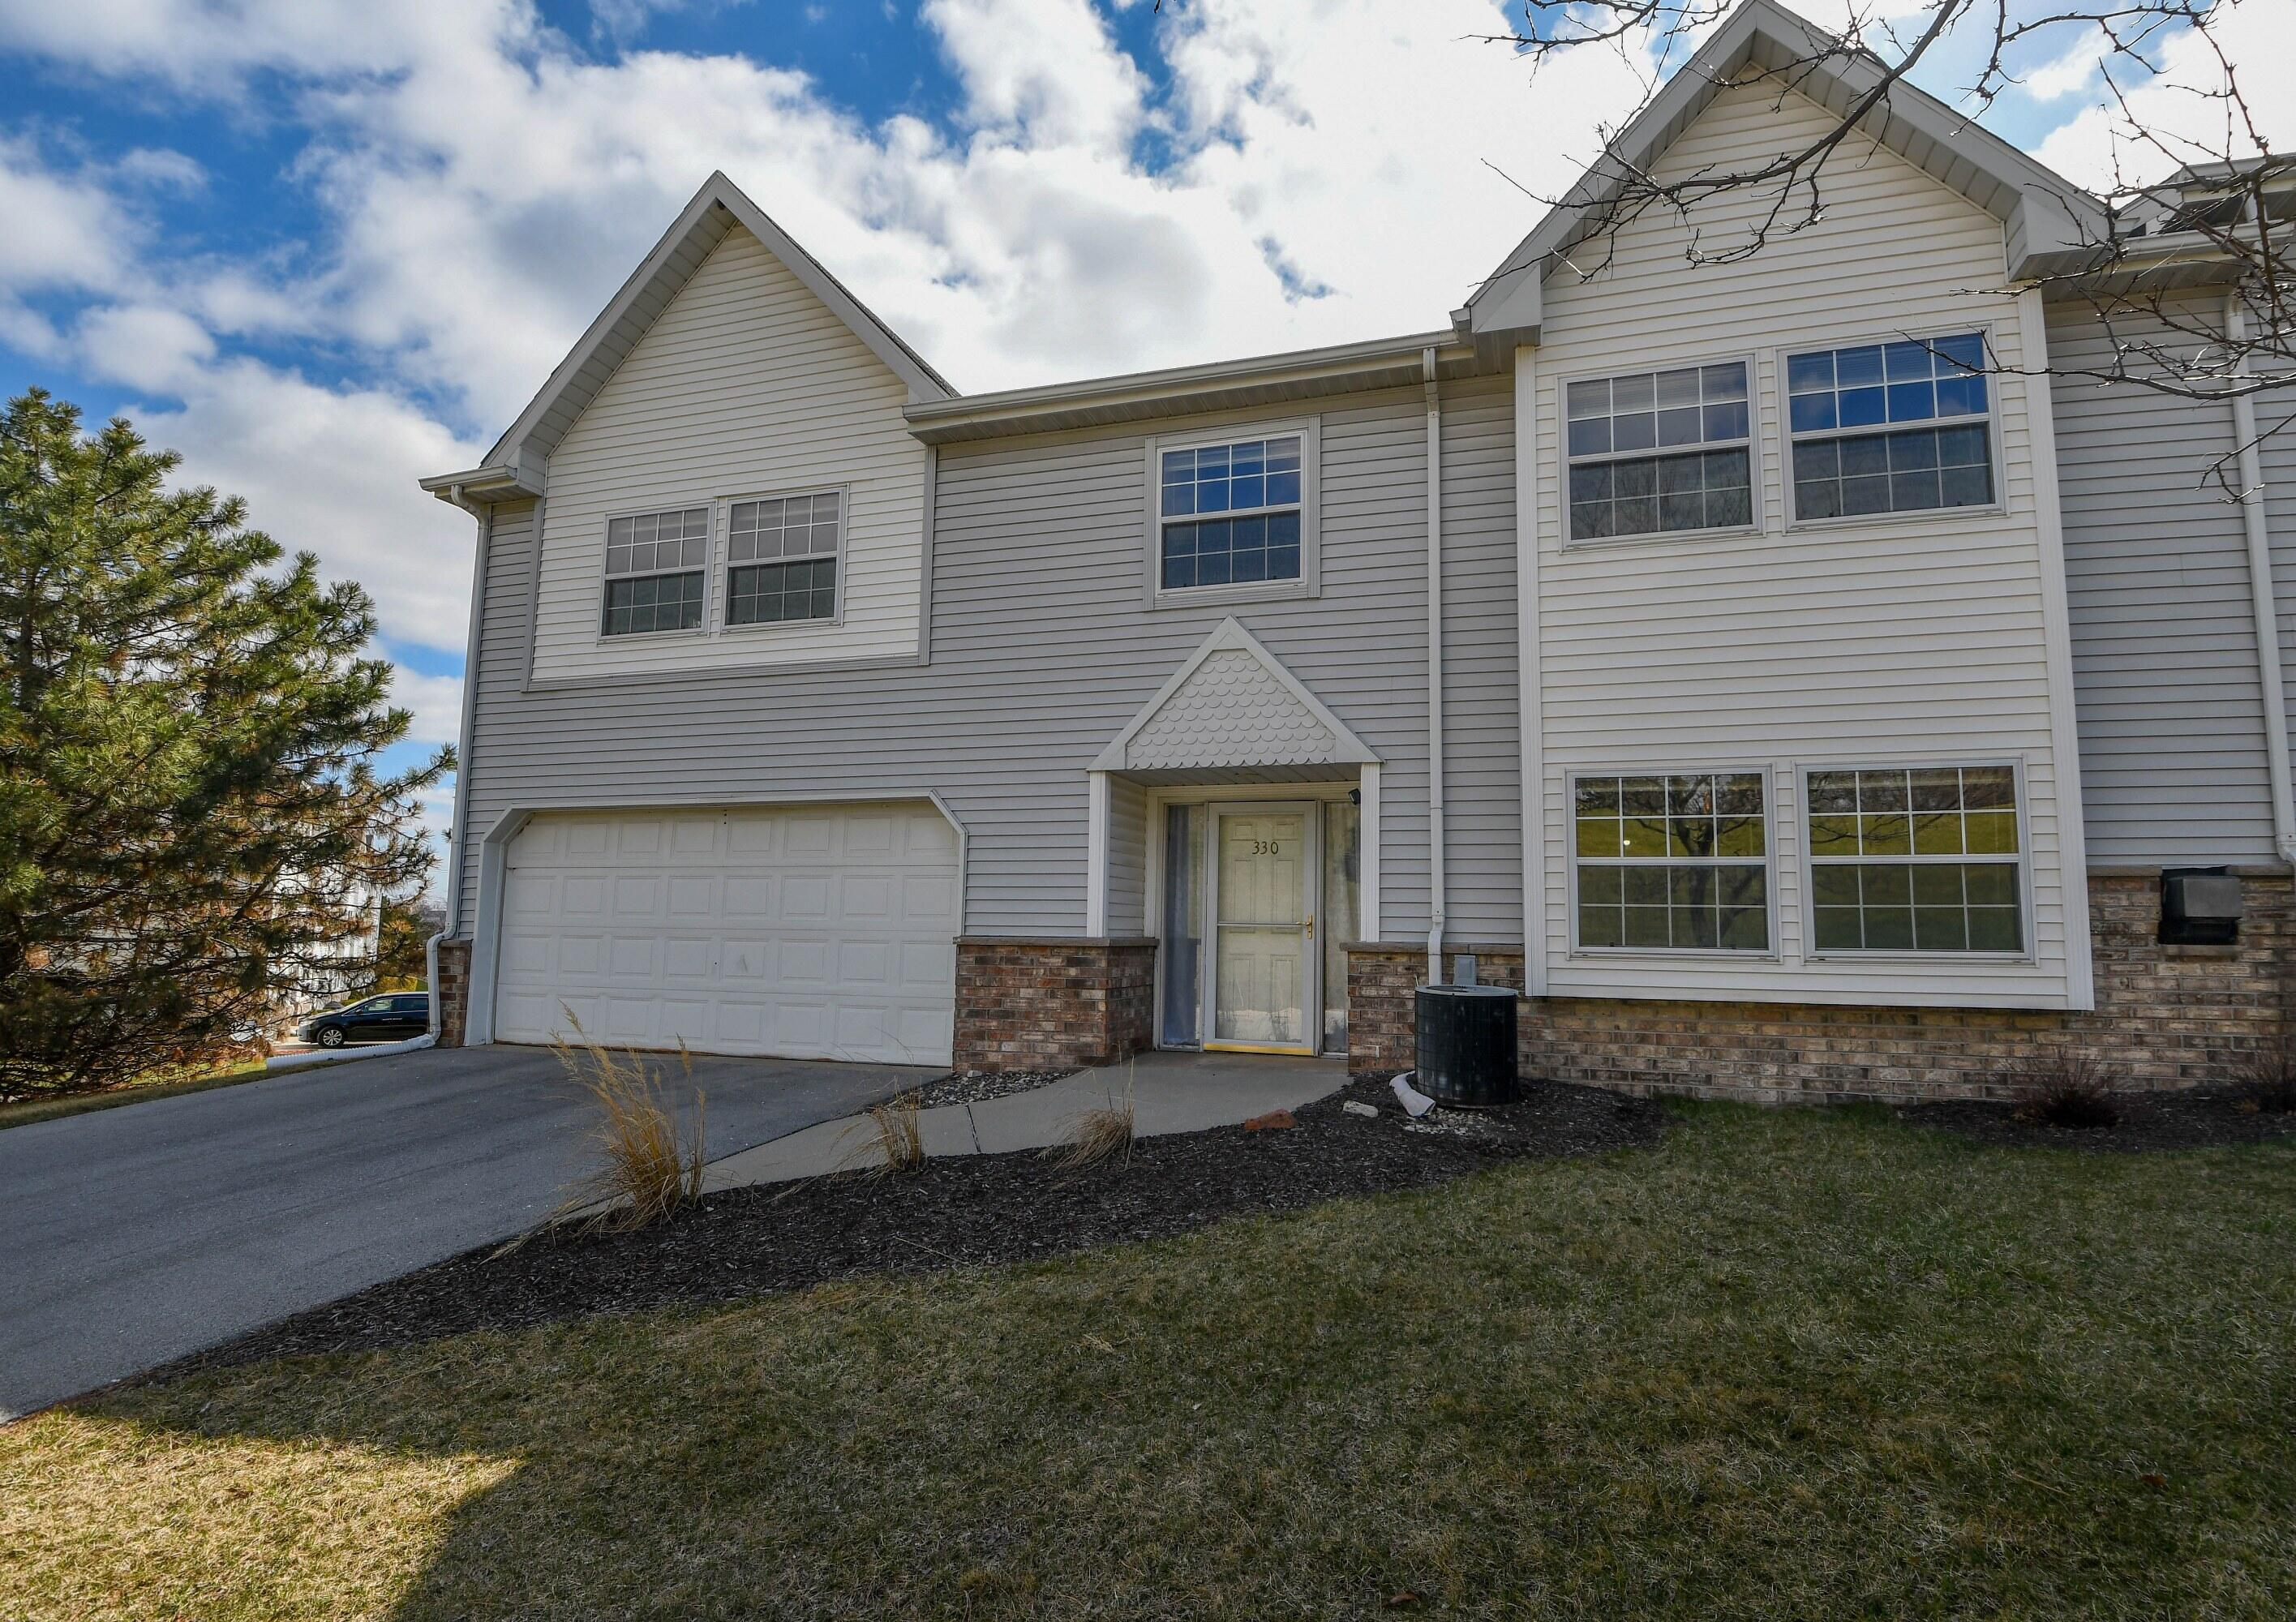 330 Dustin Dr, Brookfield, Wisconsin 53045, 3 Bedrooms Bedrooms, 7 Rooms Rooms,2 BathroomsBathrooms,Condominiums,For Sale,Dustin Dr,1,1734232